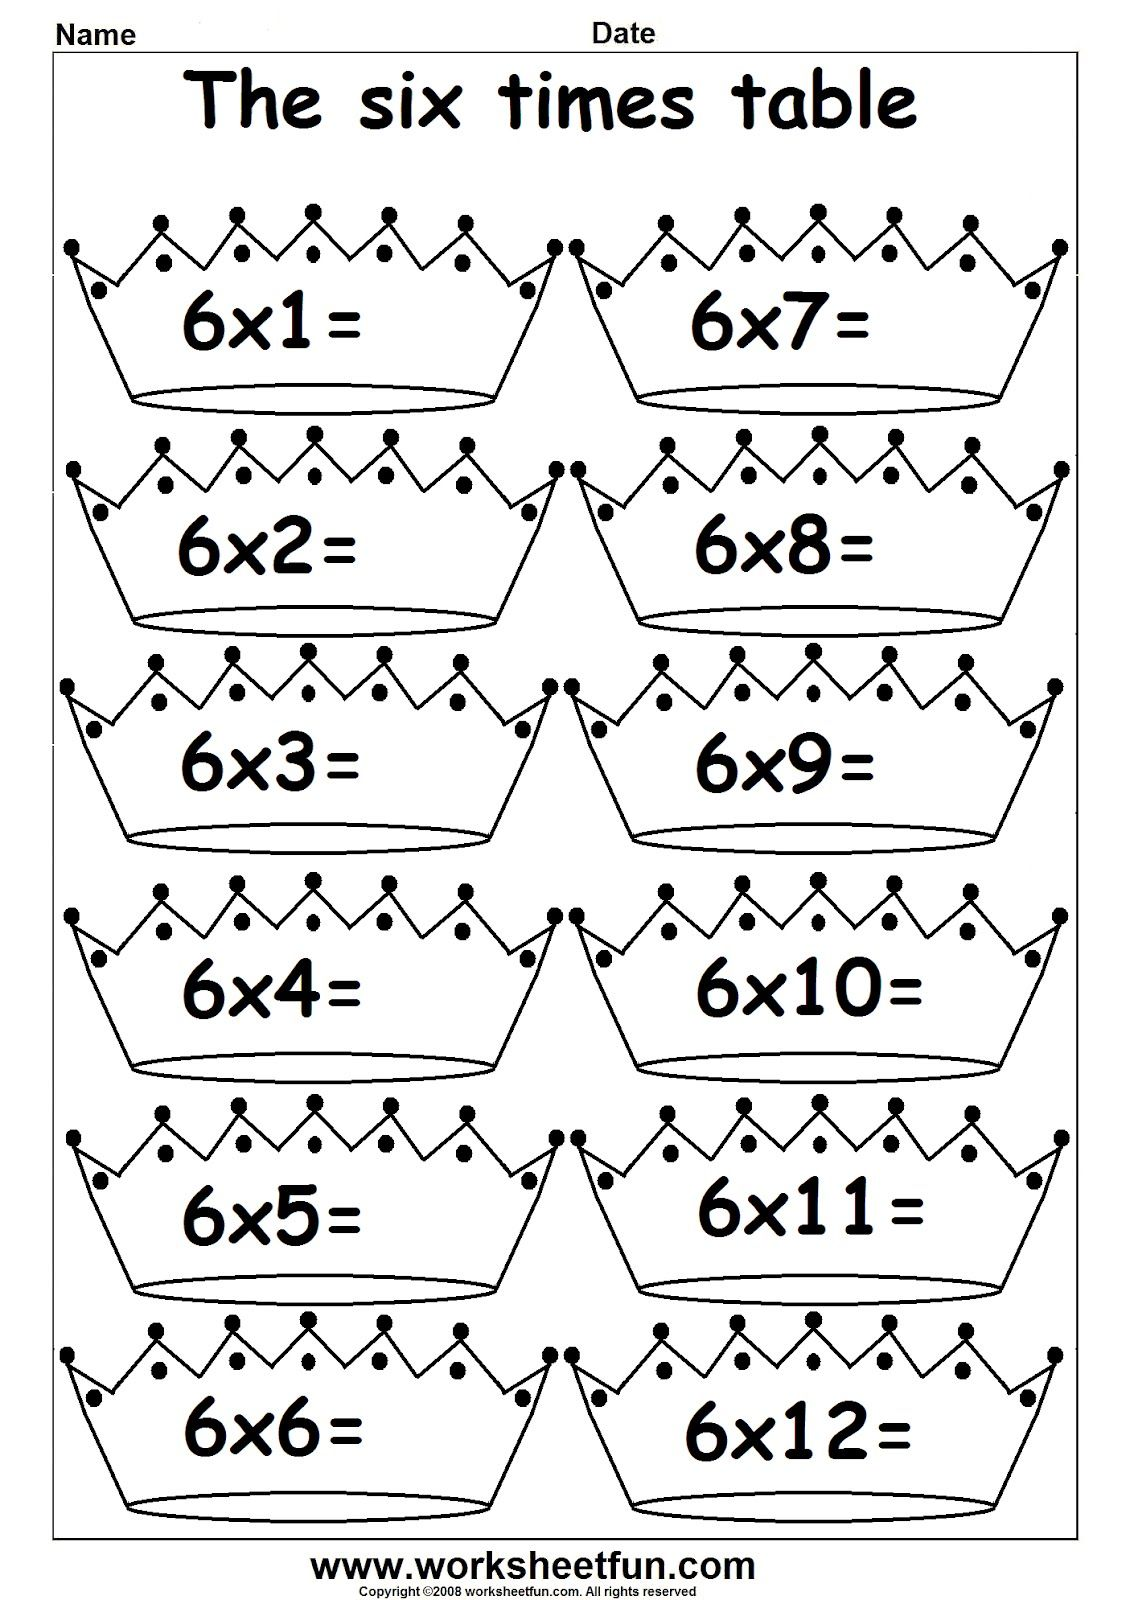 Times Tables Worksheets Free Printable Times tables